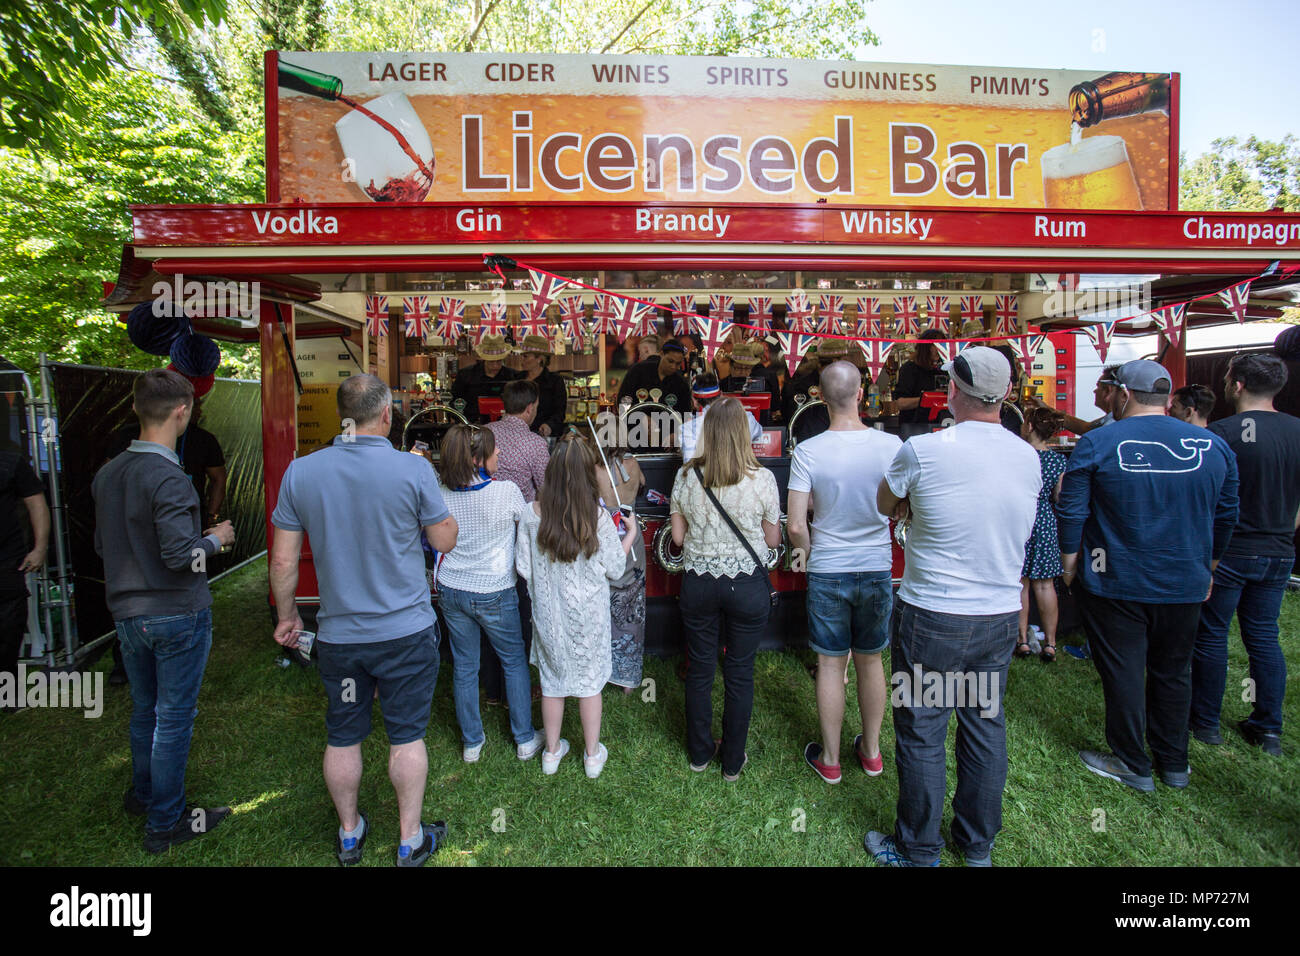 People seen lining up to buy beer. The wedding of Prince Harry and Meghan Markle was held on 19 May 2018 in St George's Chapel at Windsor Castle in the United Kingdom, ordinarily people from UK and  the rest of the world came to celebrate and enjoy the royal wedding. Stock Photo